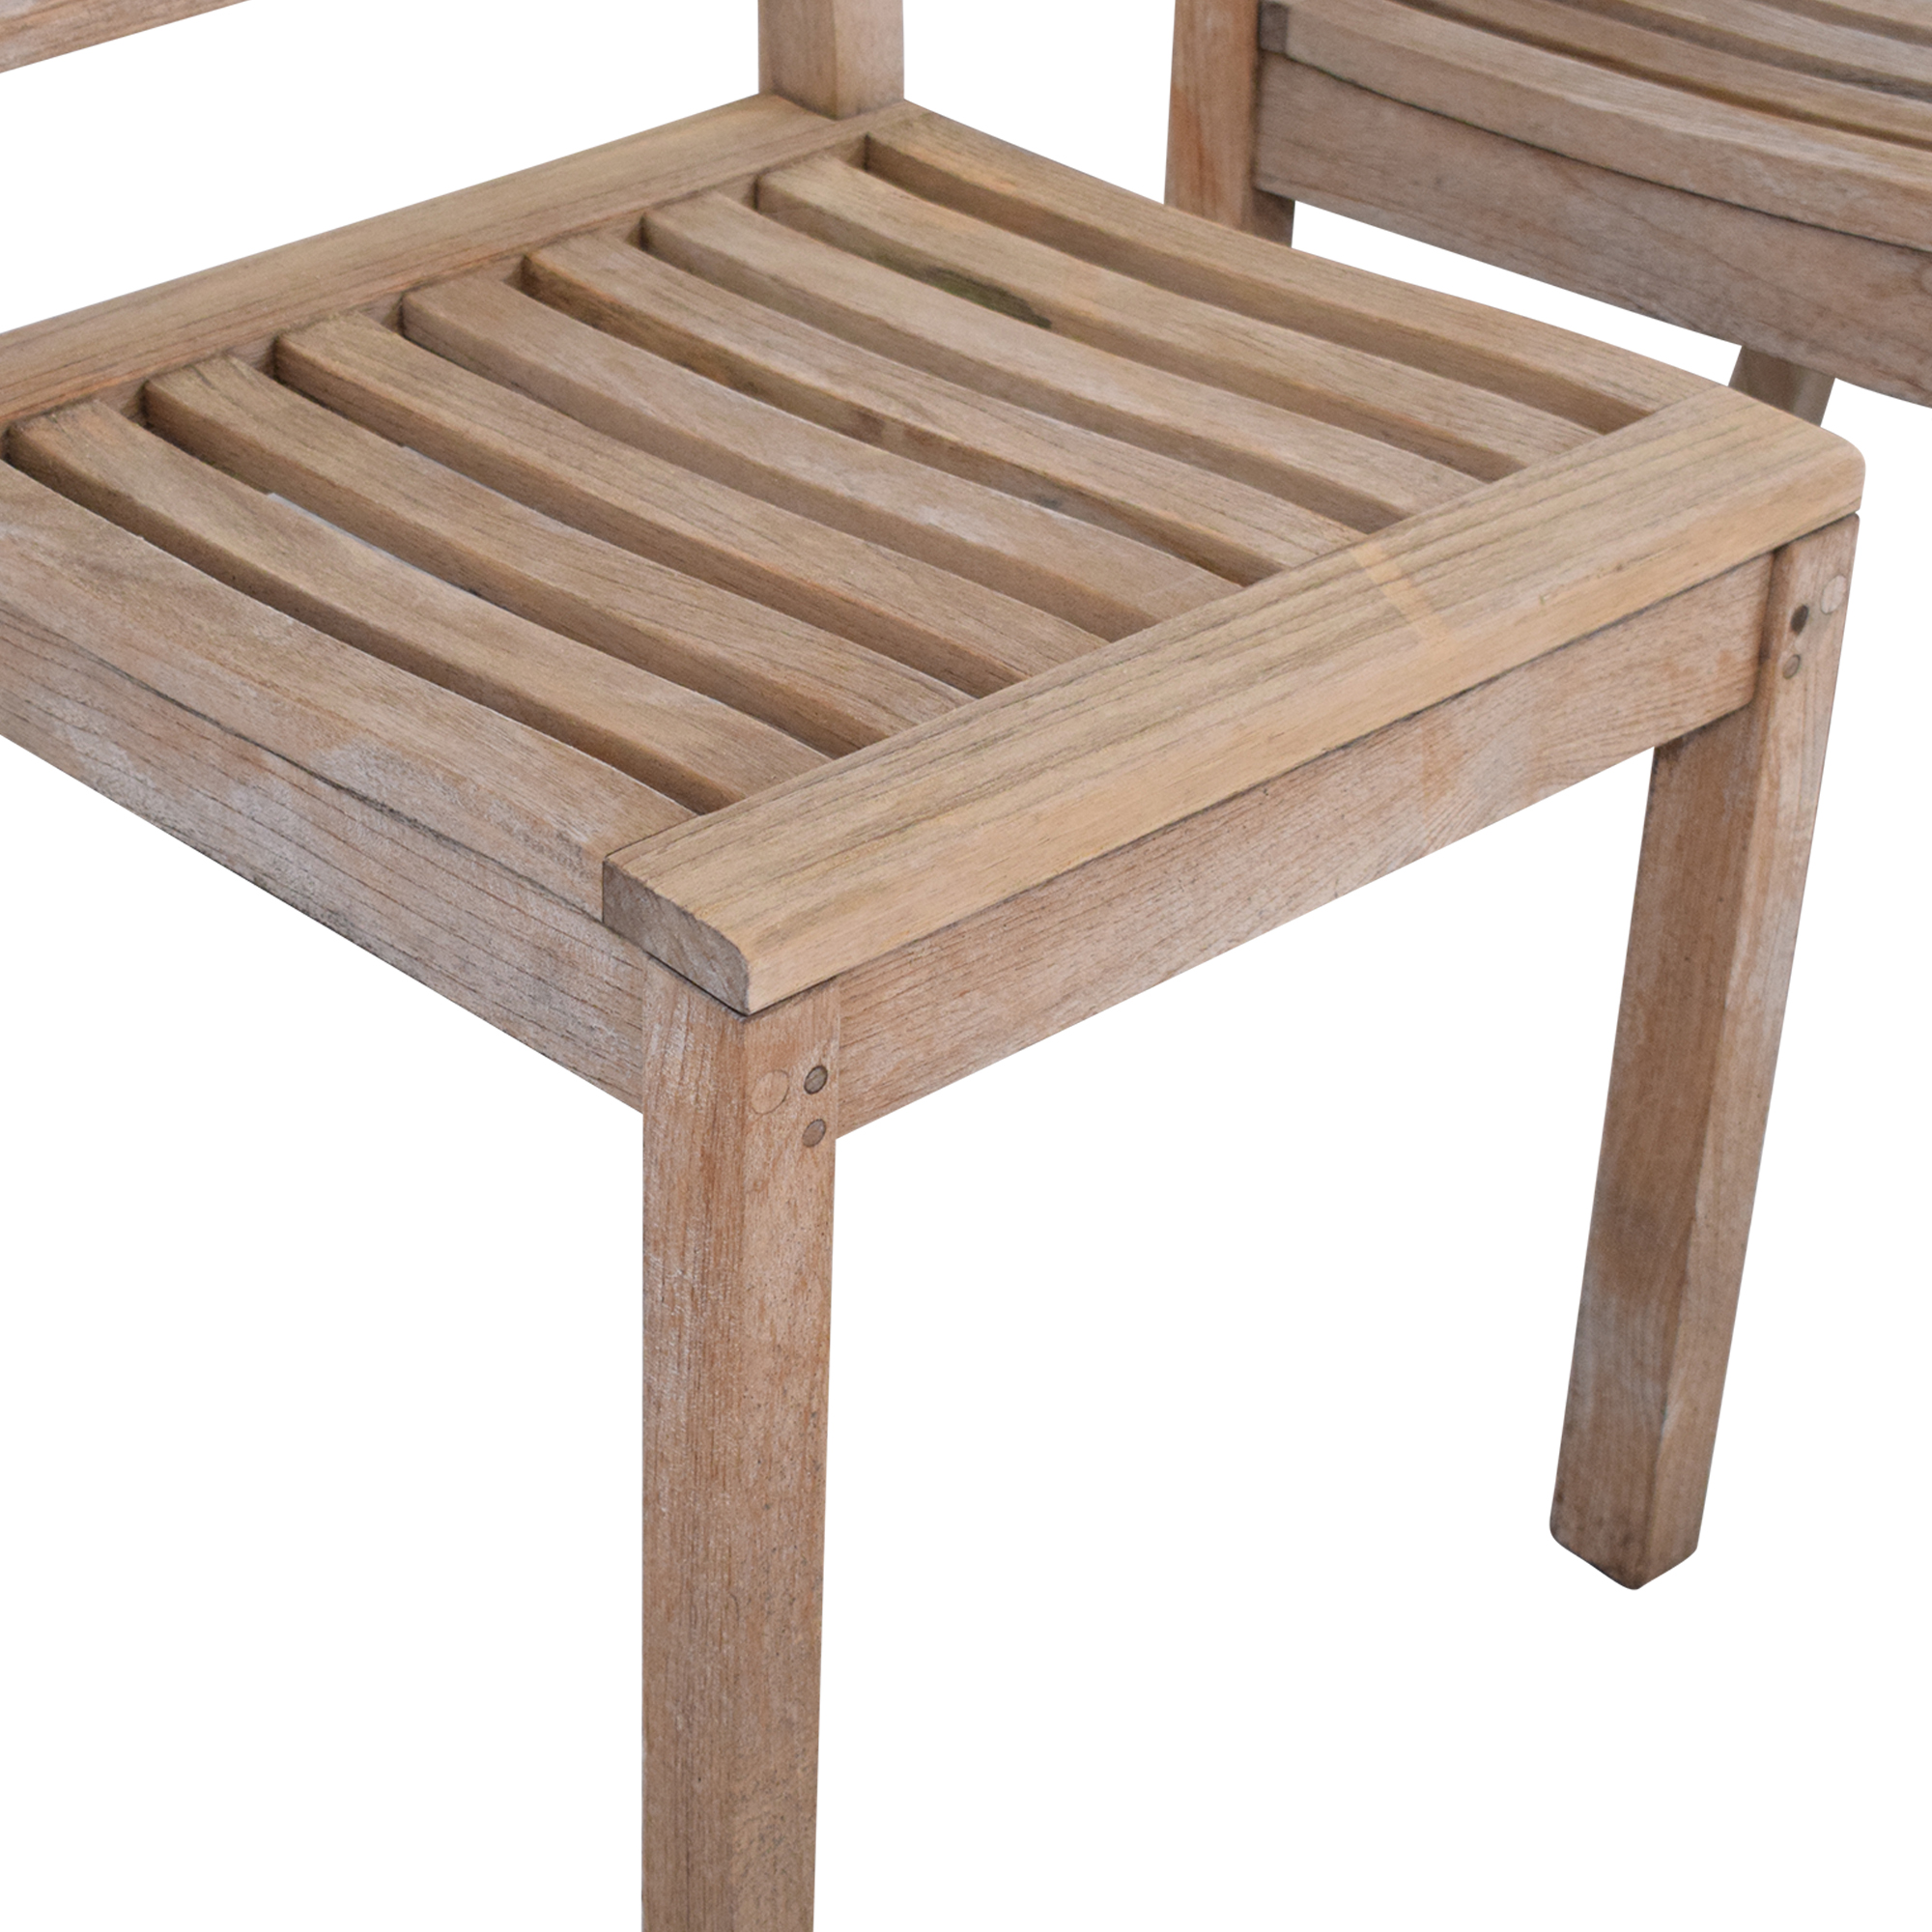 Gloster Gloster Wooden Dining Chairs for sale